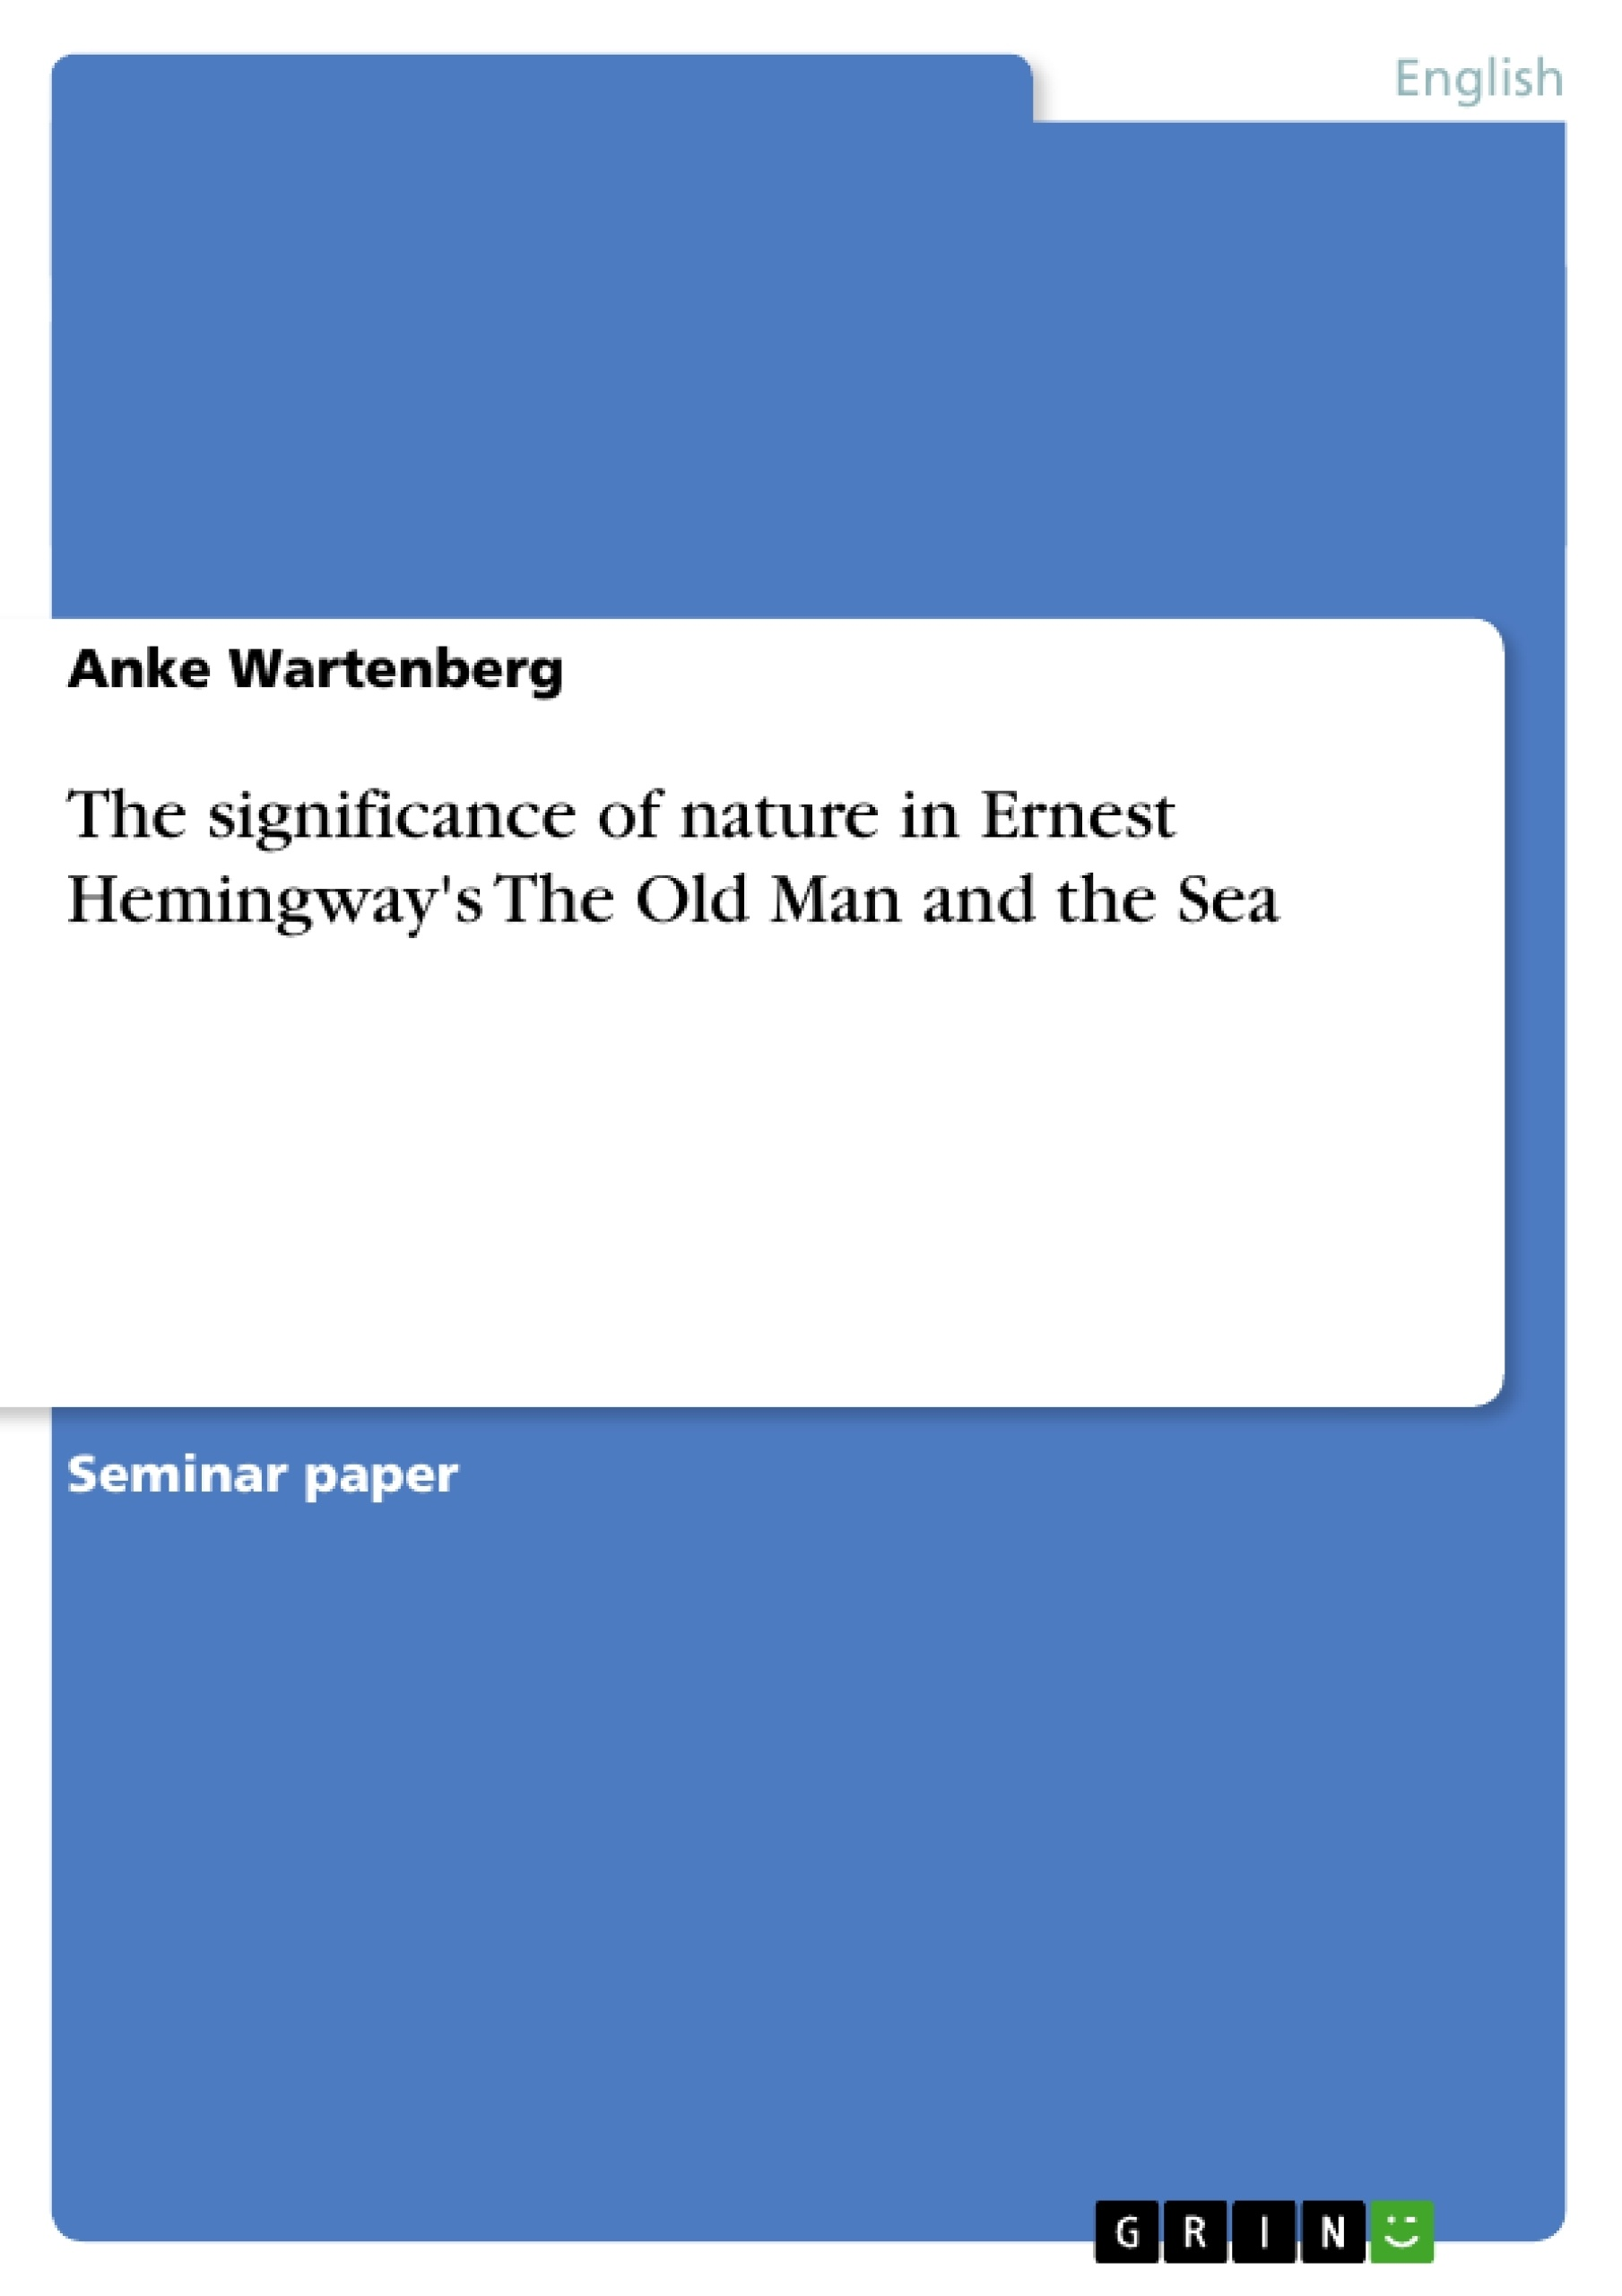 old man and the sea essay old man and the sea essay writing a  relationship between santiago manolin essay old man relationship between santiago manolin essay